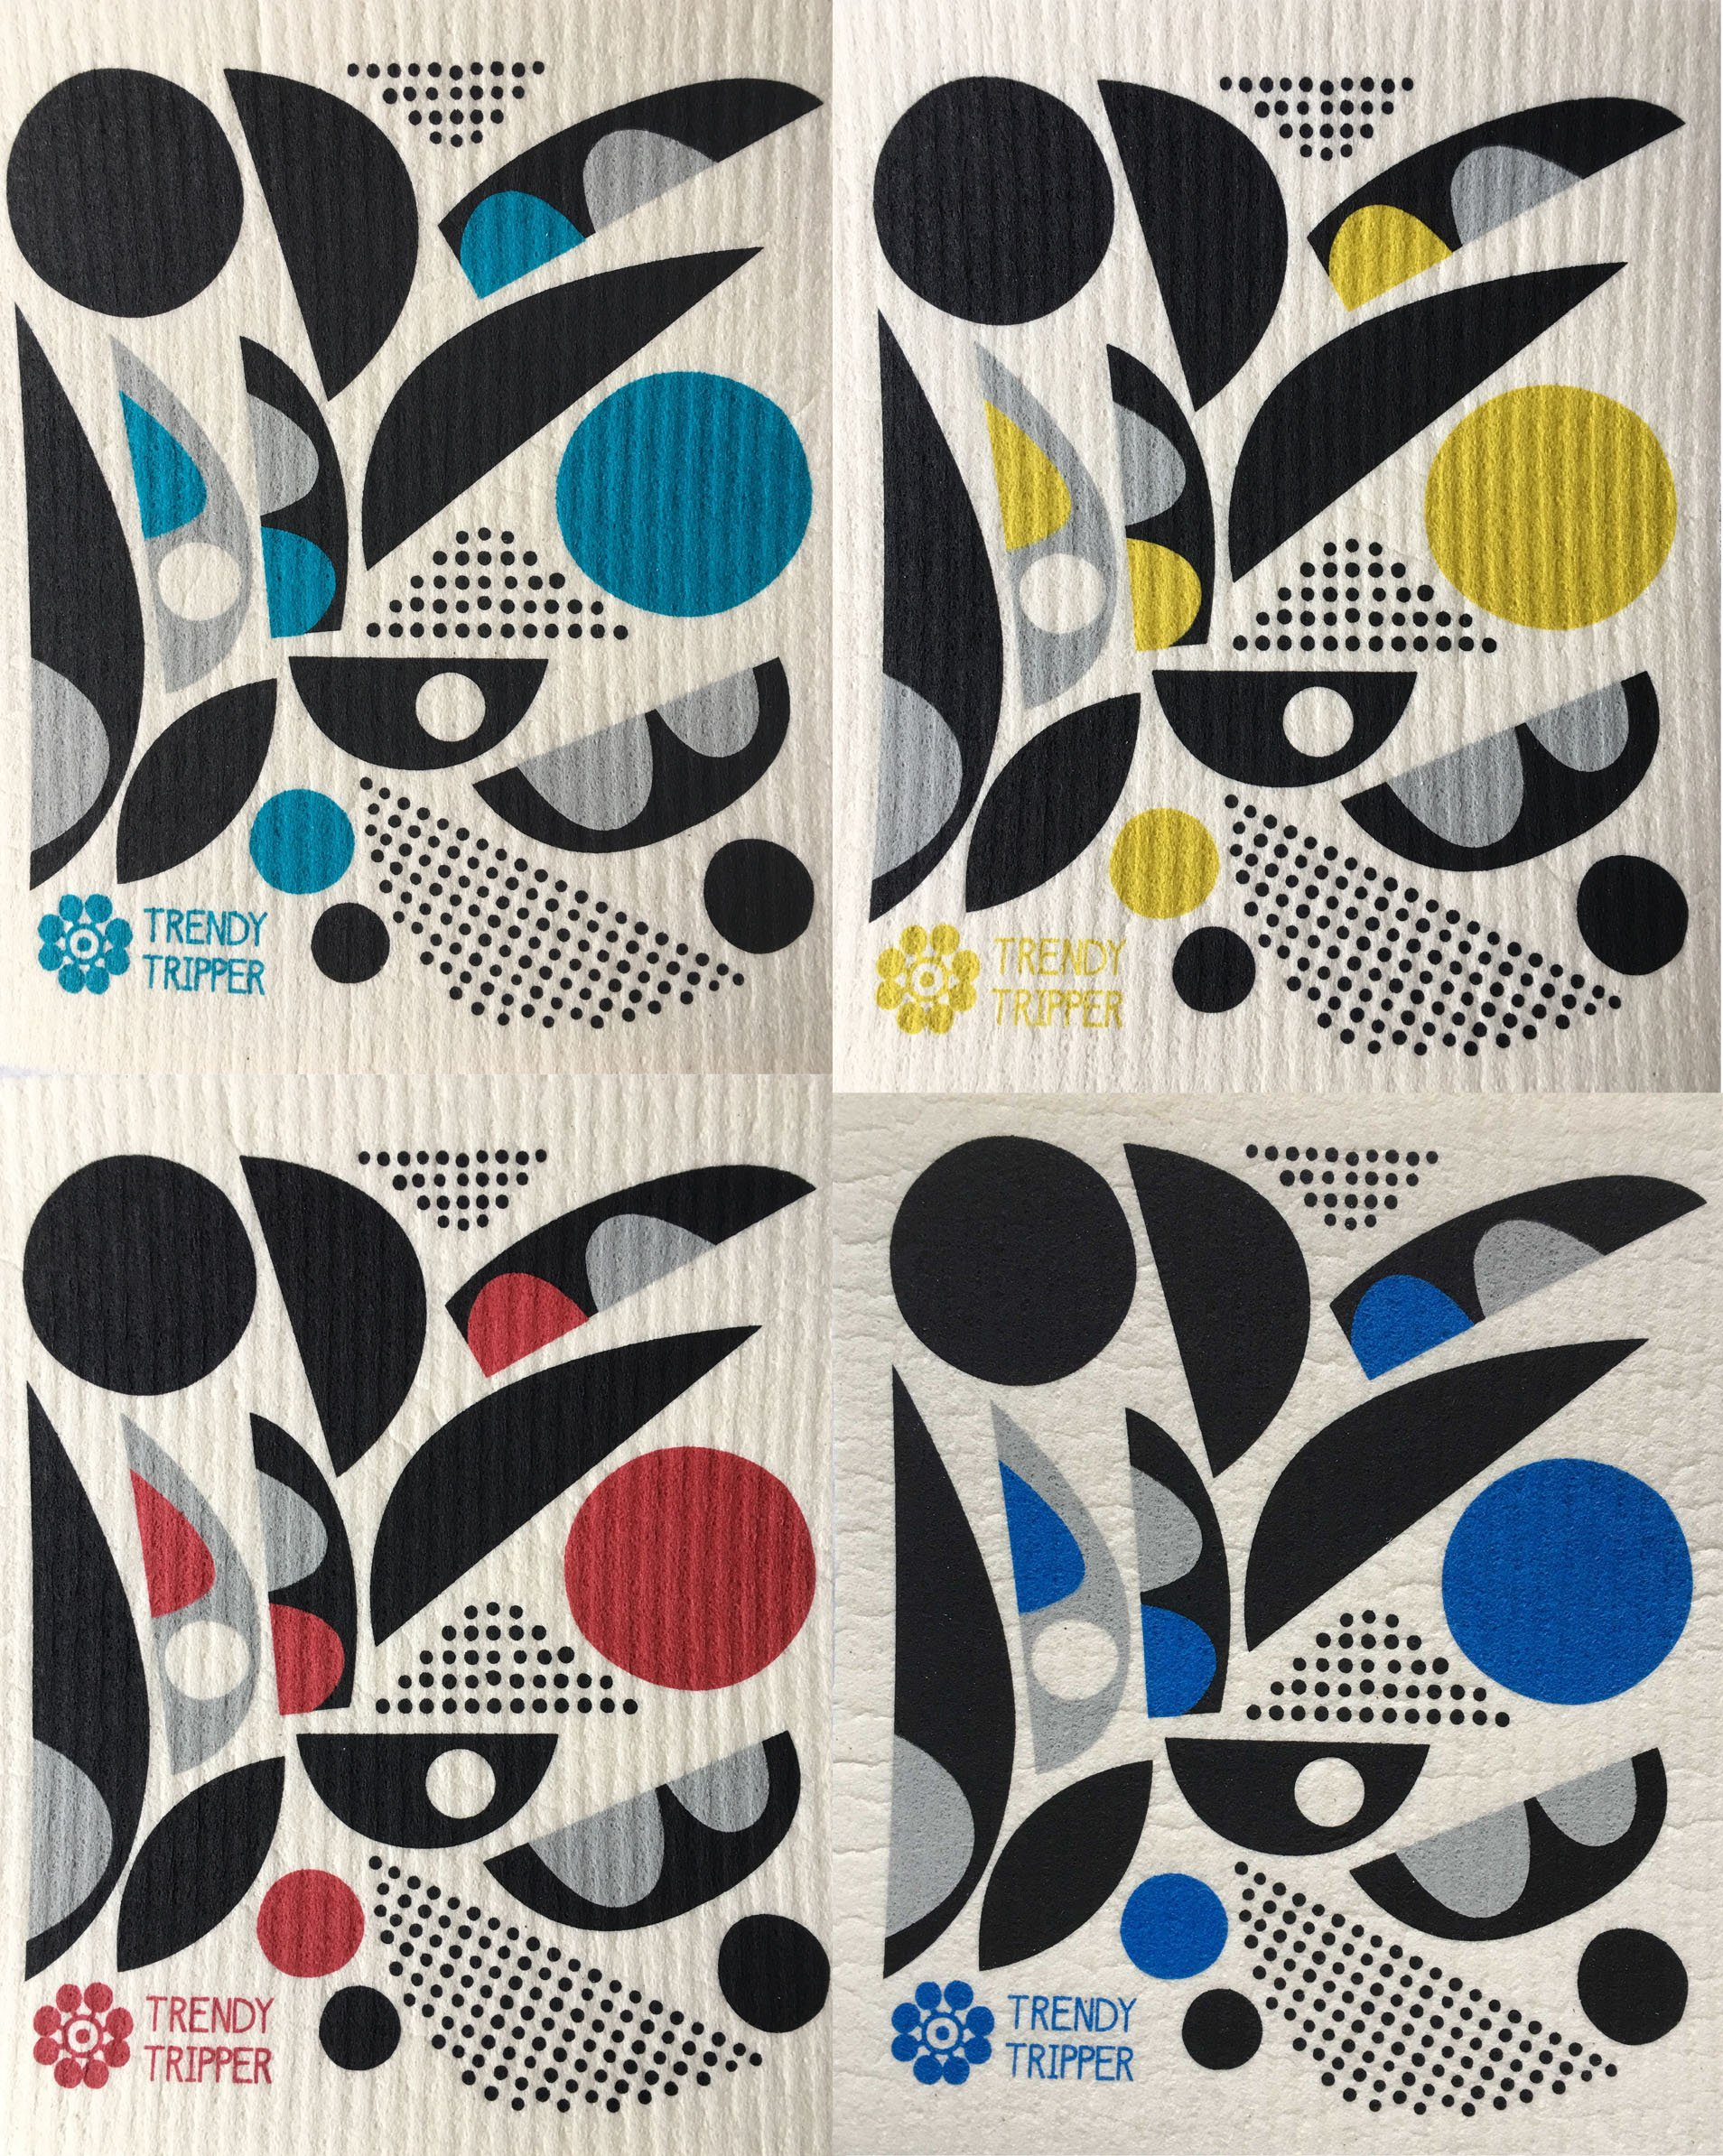 Trendy Tripper Swedish Dishcloths, Set of 4 MID-CENTURY MODERN ABSTRACT Designs (Set of 4 Abstract with 3 colors)